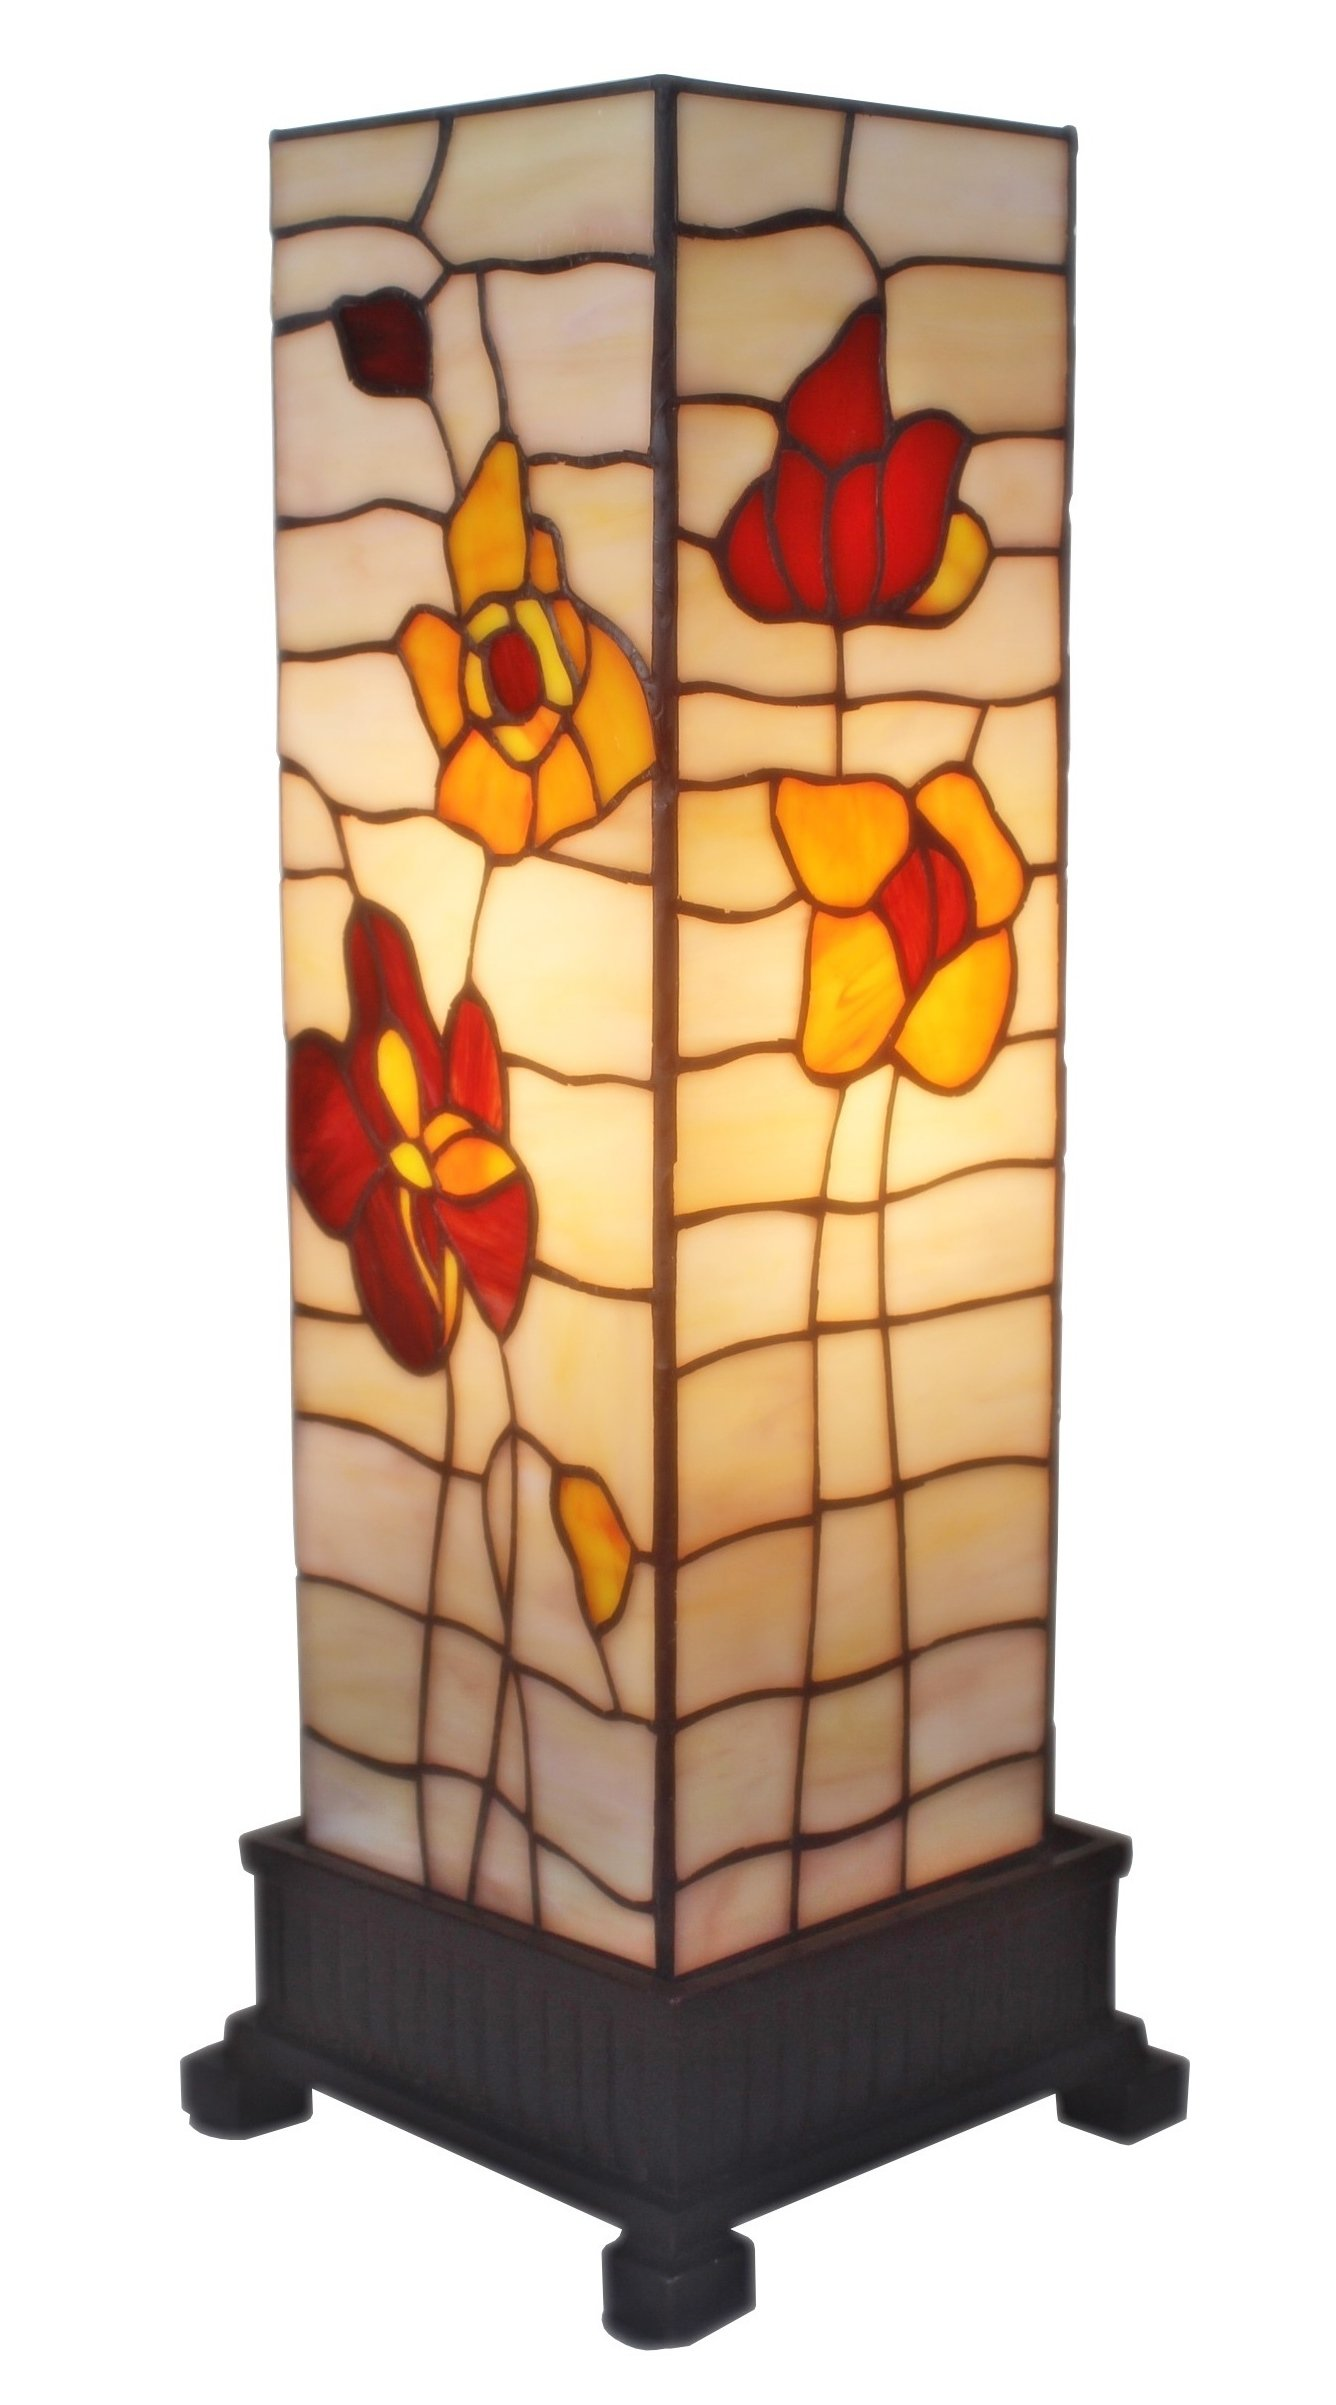 Amora Lighting AM095TL06 Tiffany Style Poppies Table Lamp 18 inches High